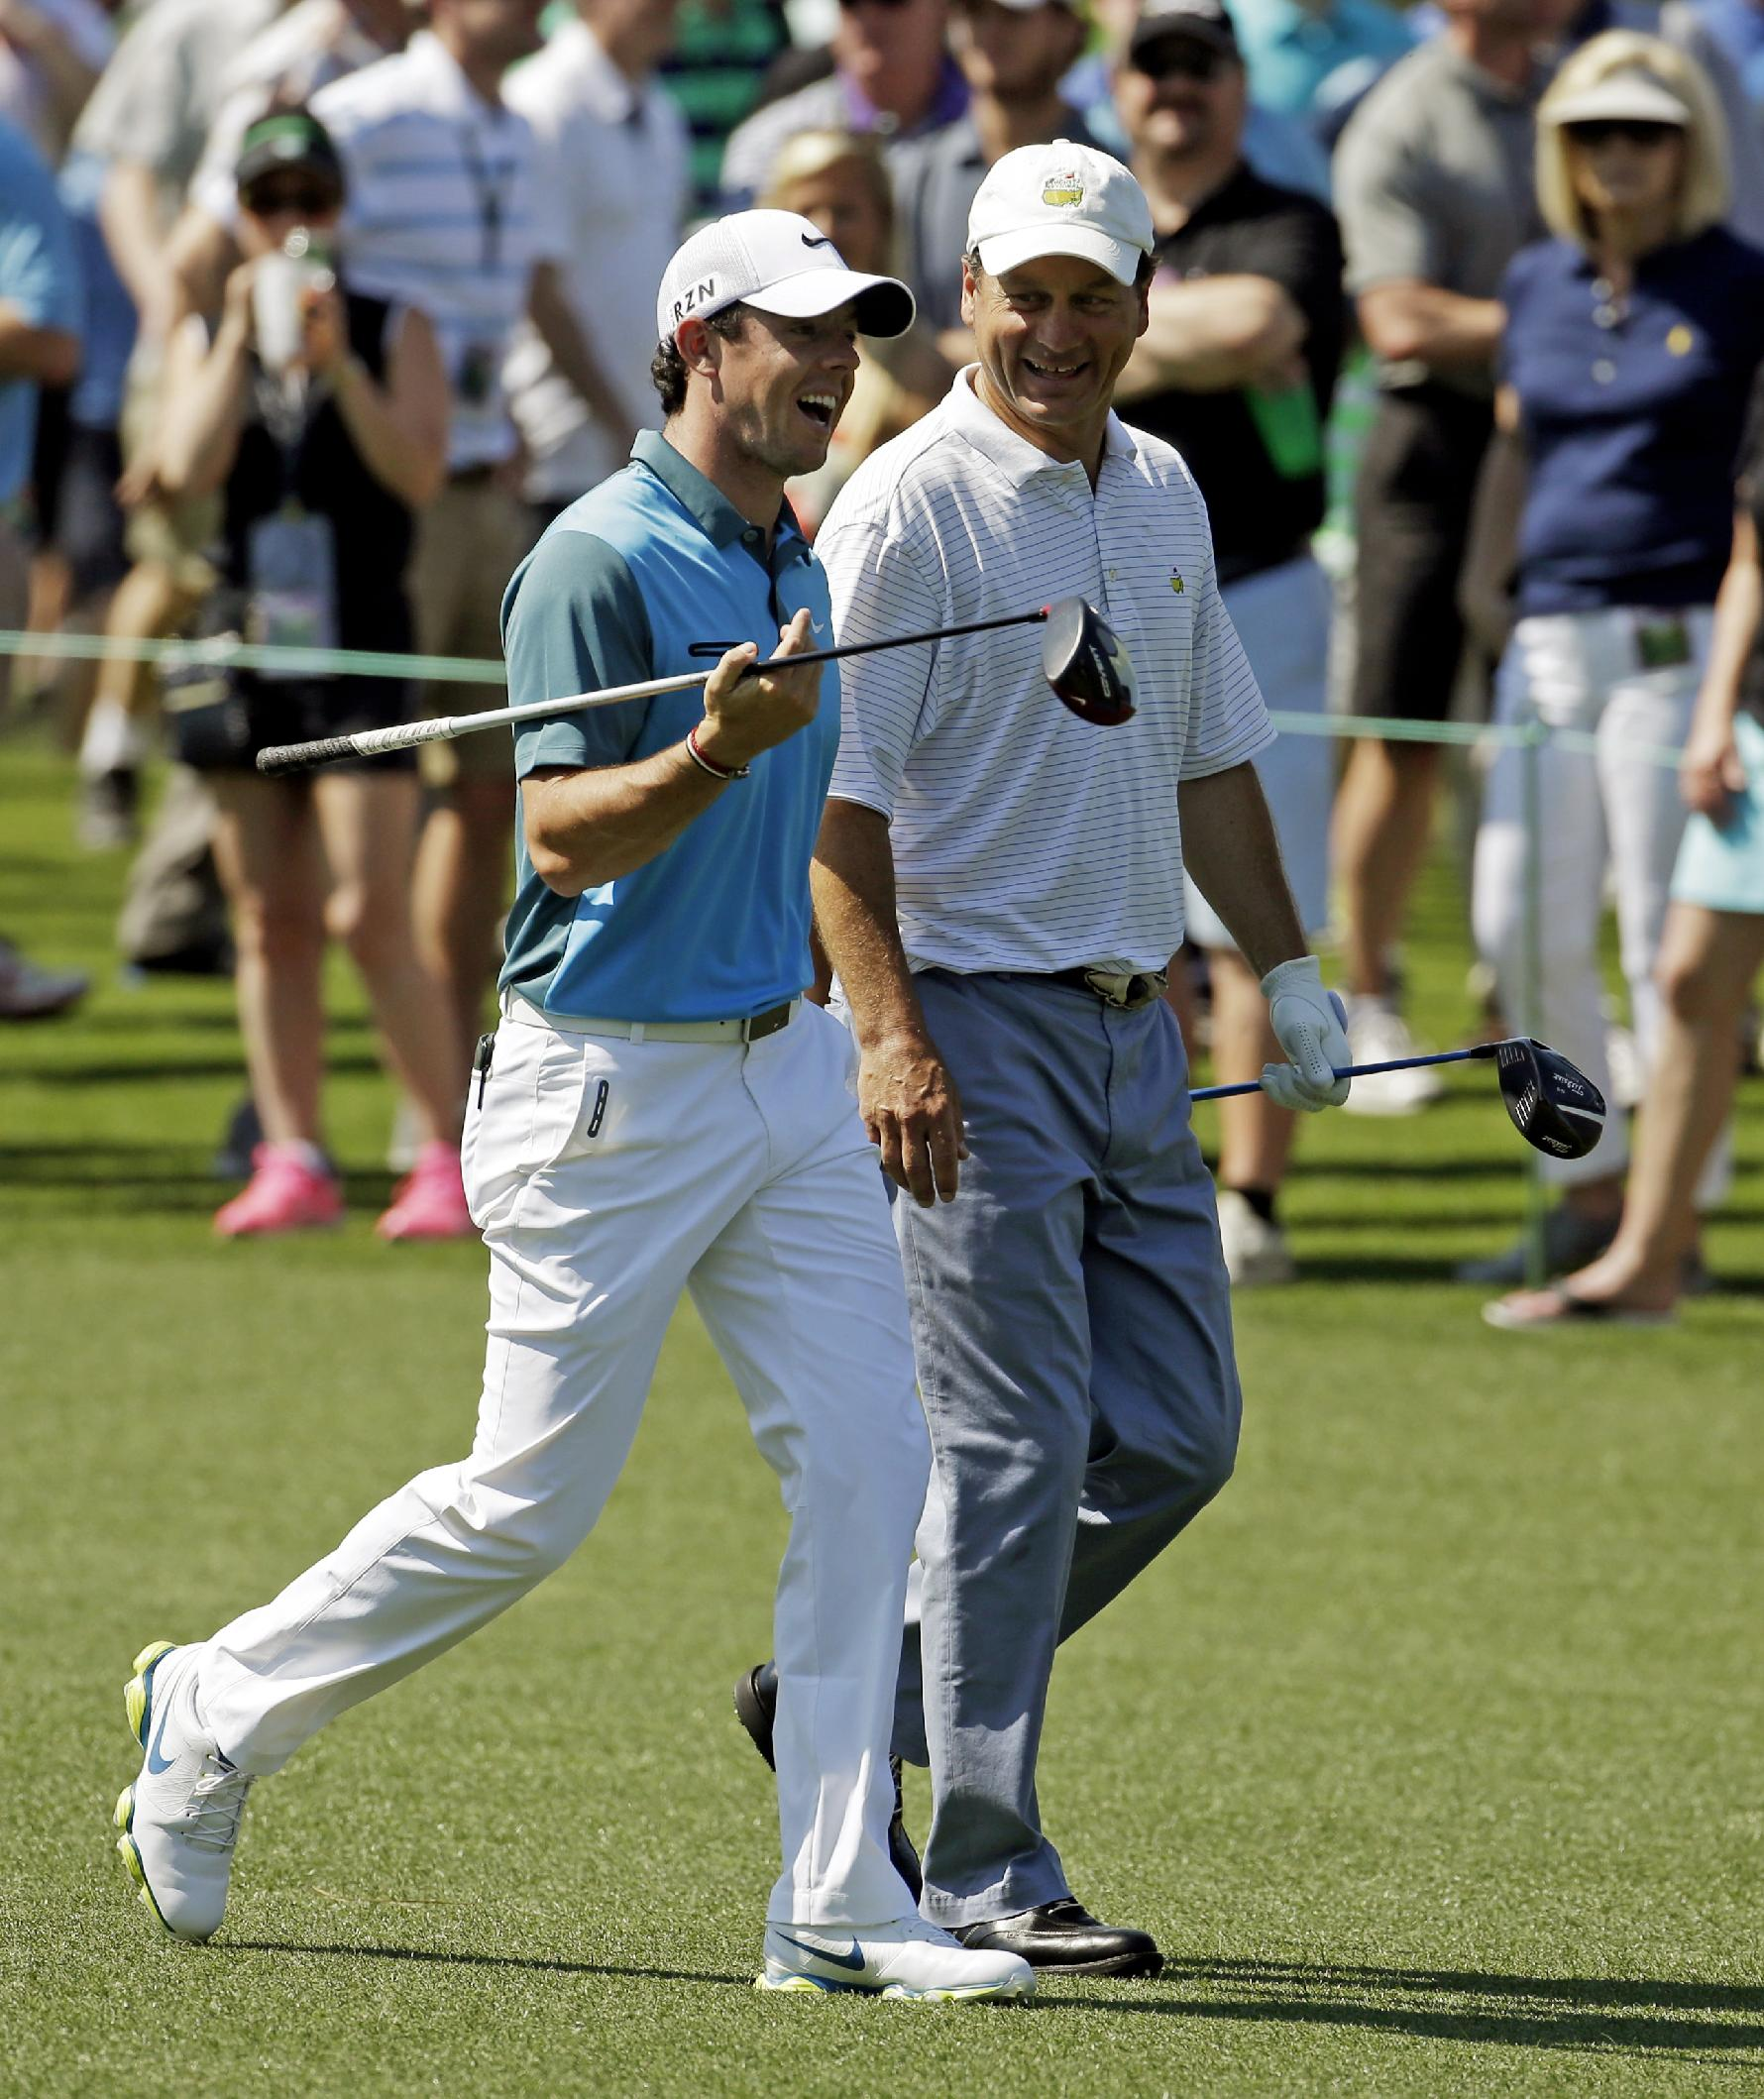 Masters to distribute $9M in prize money